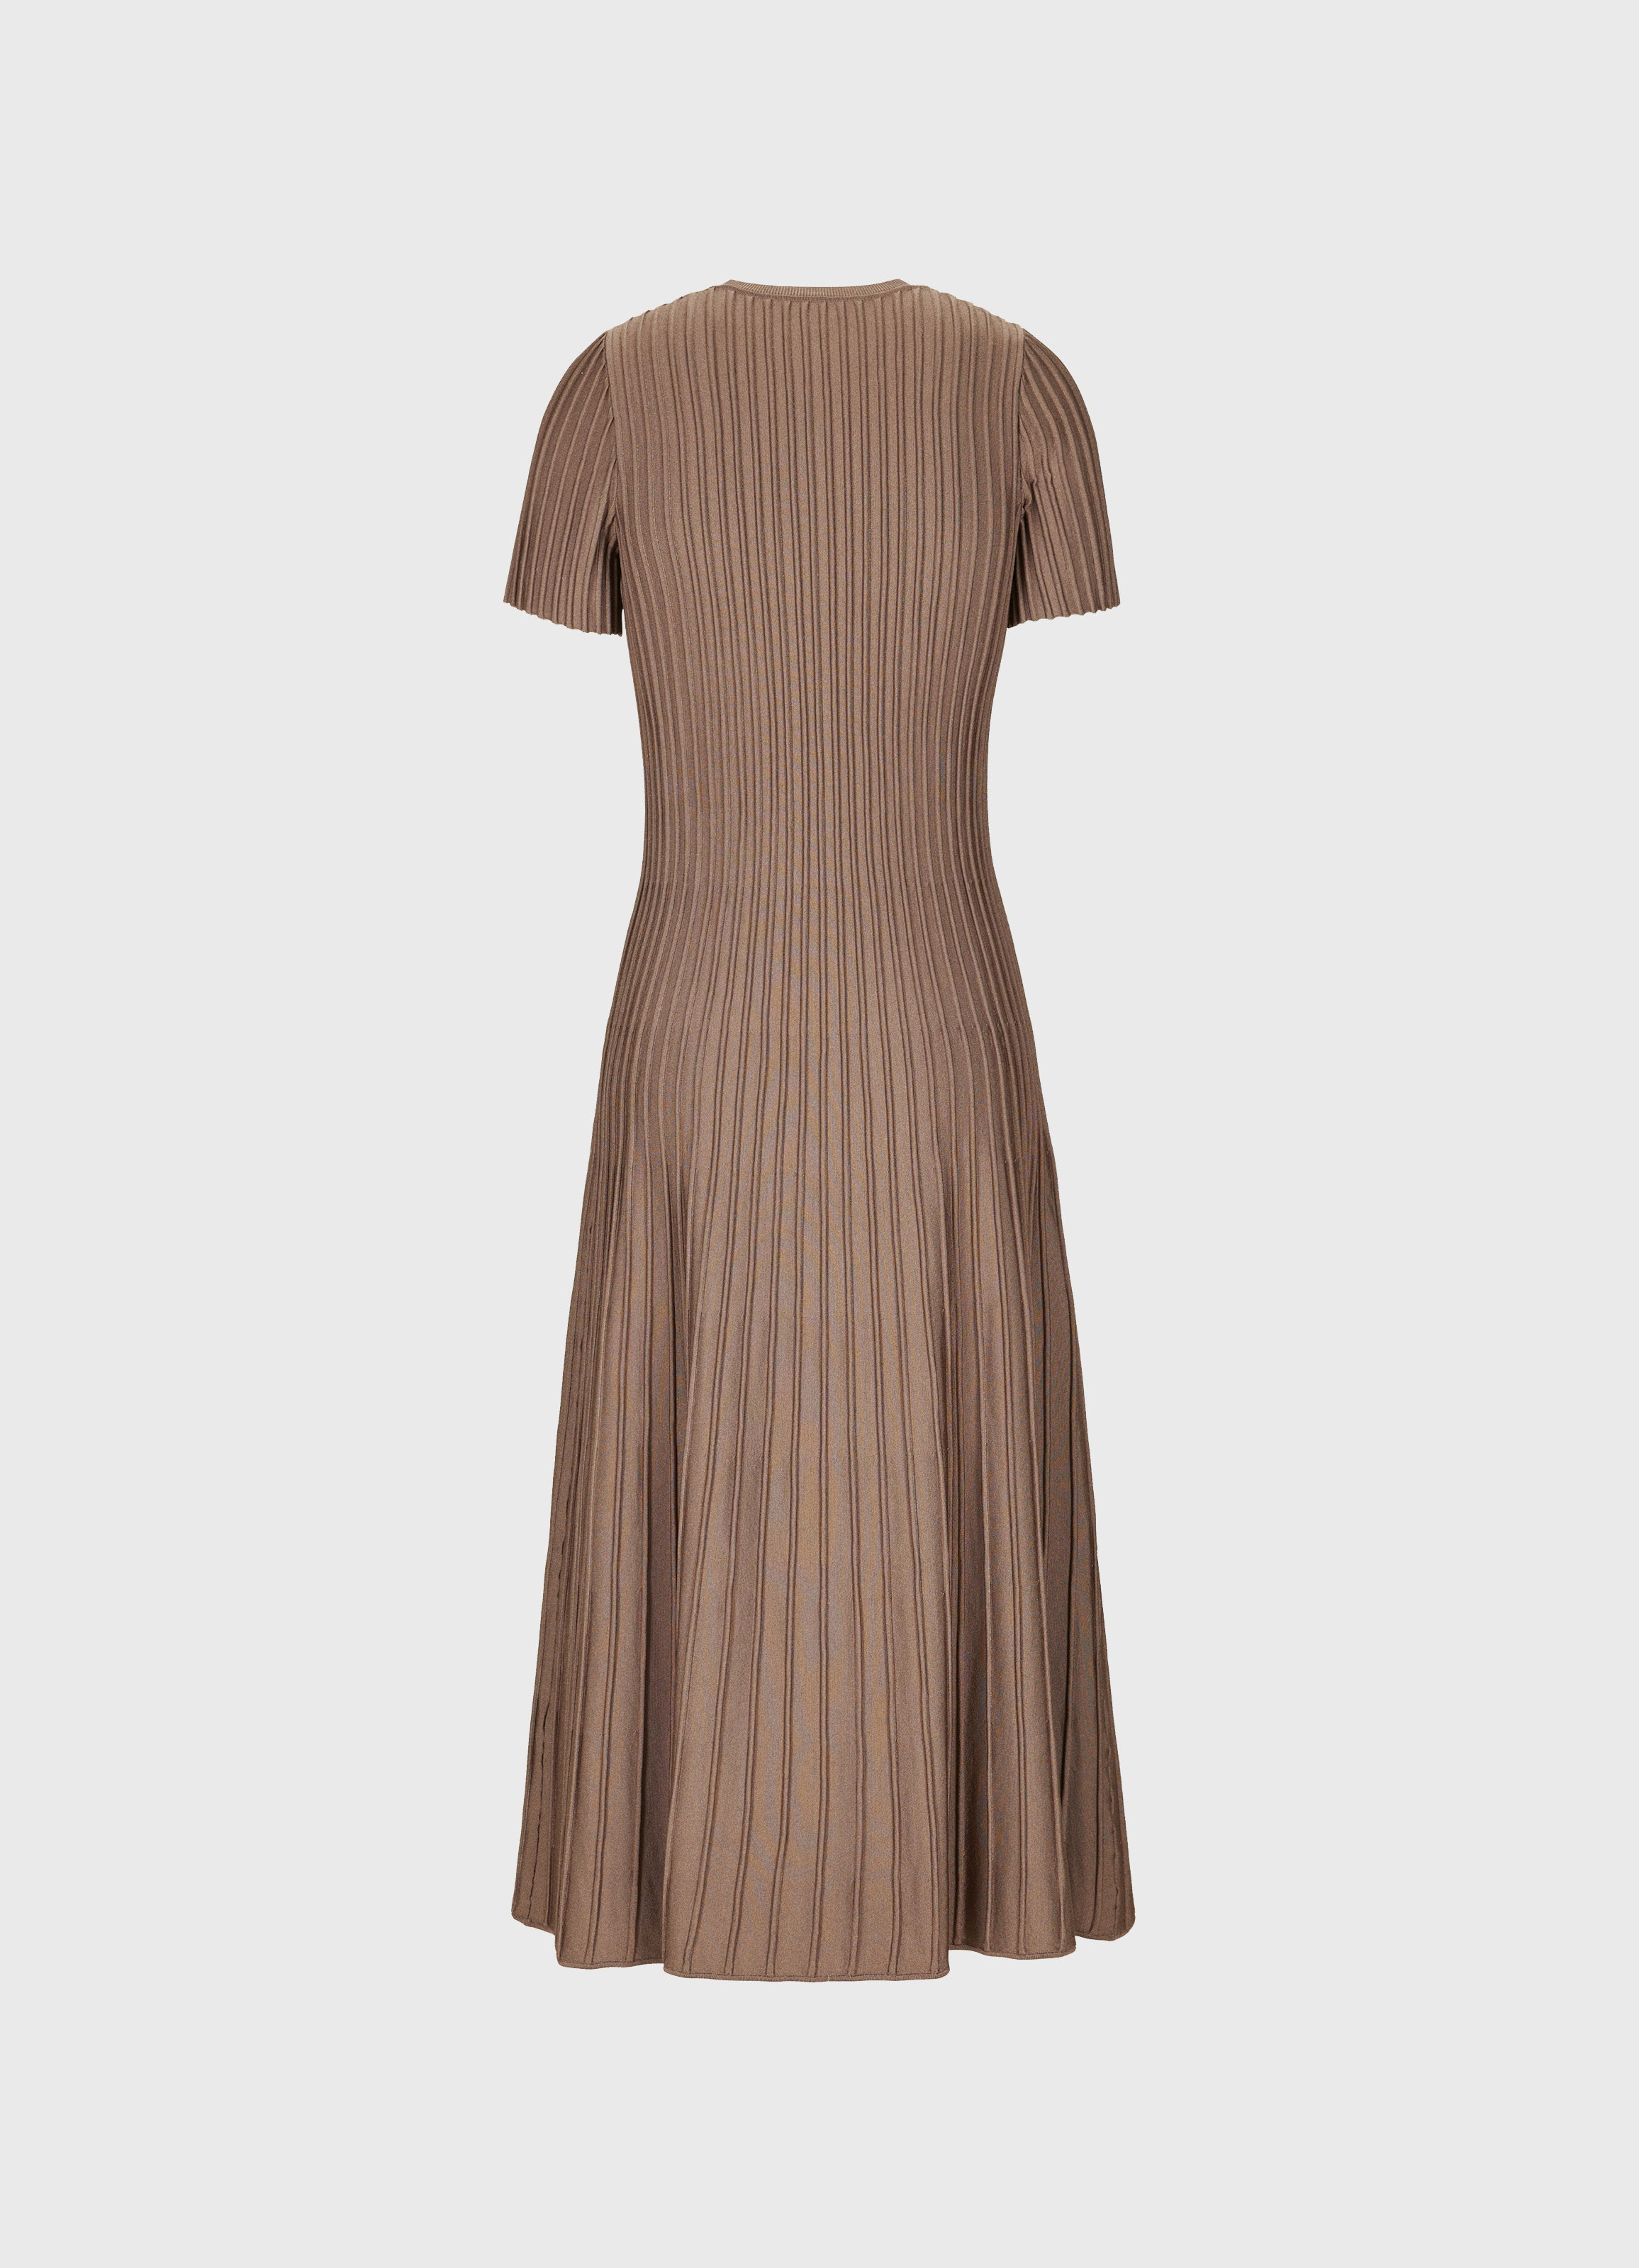 Plautilla midi dress